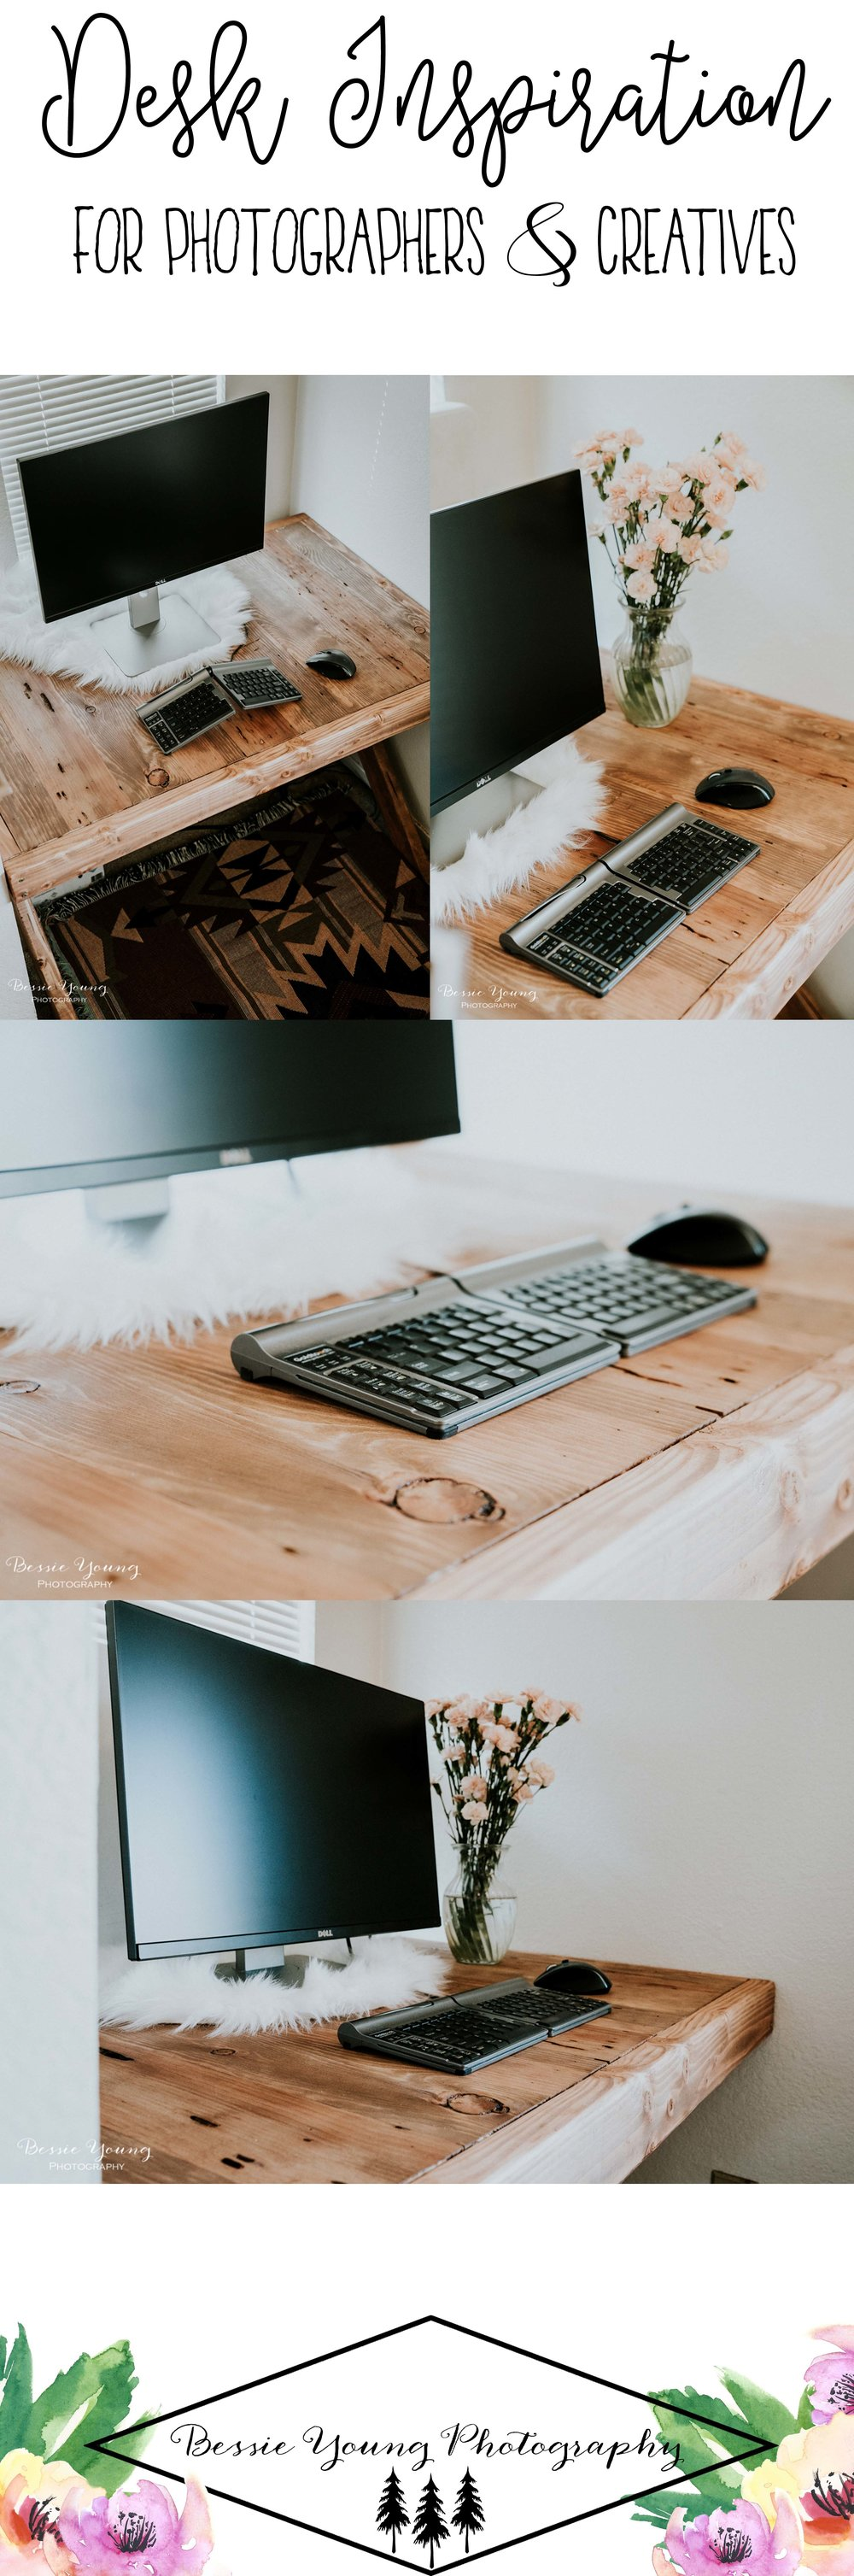 Desk Inspiration for Photographers and Creatives by Bessie Young Photography - Photography Work Space